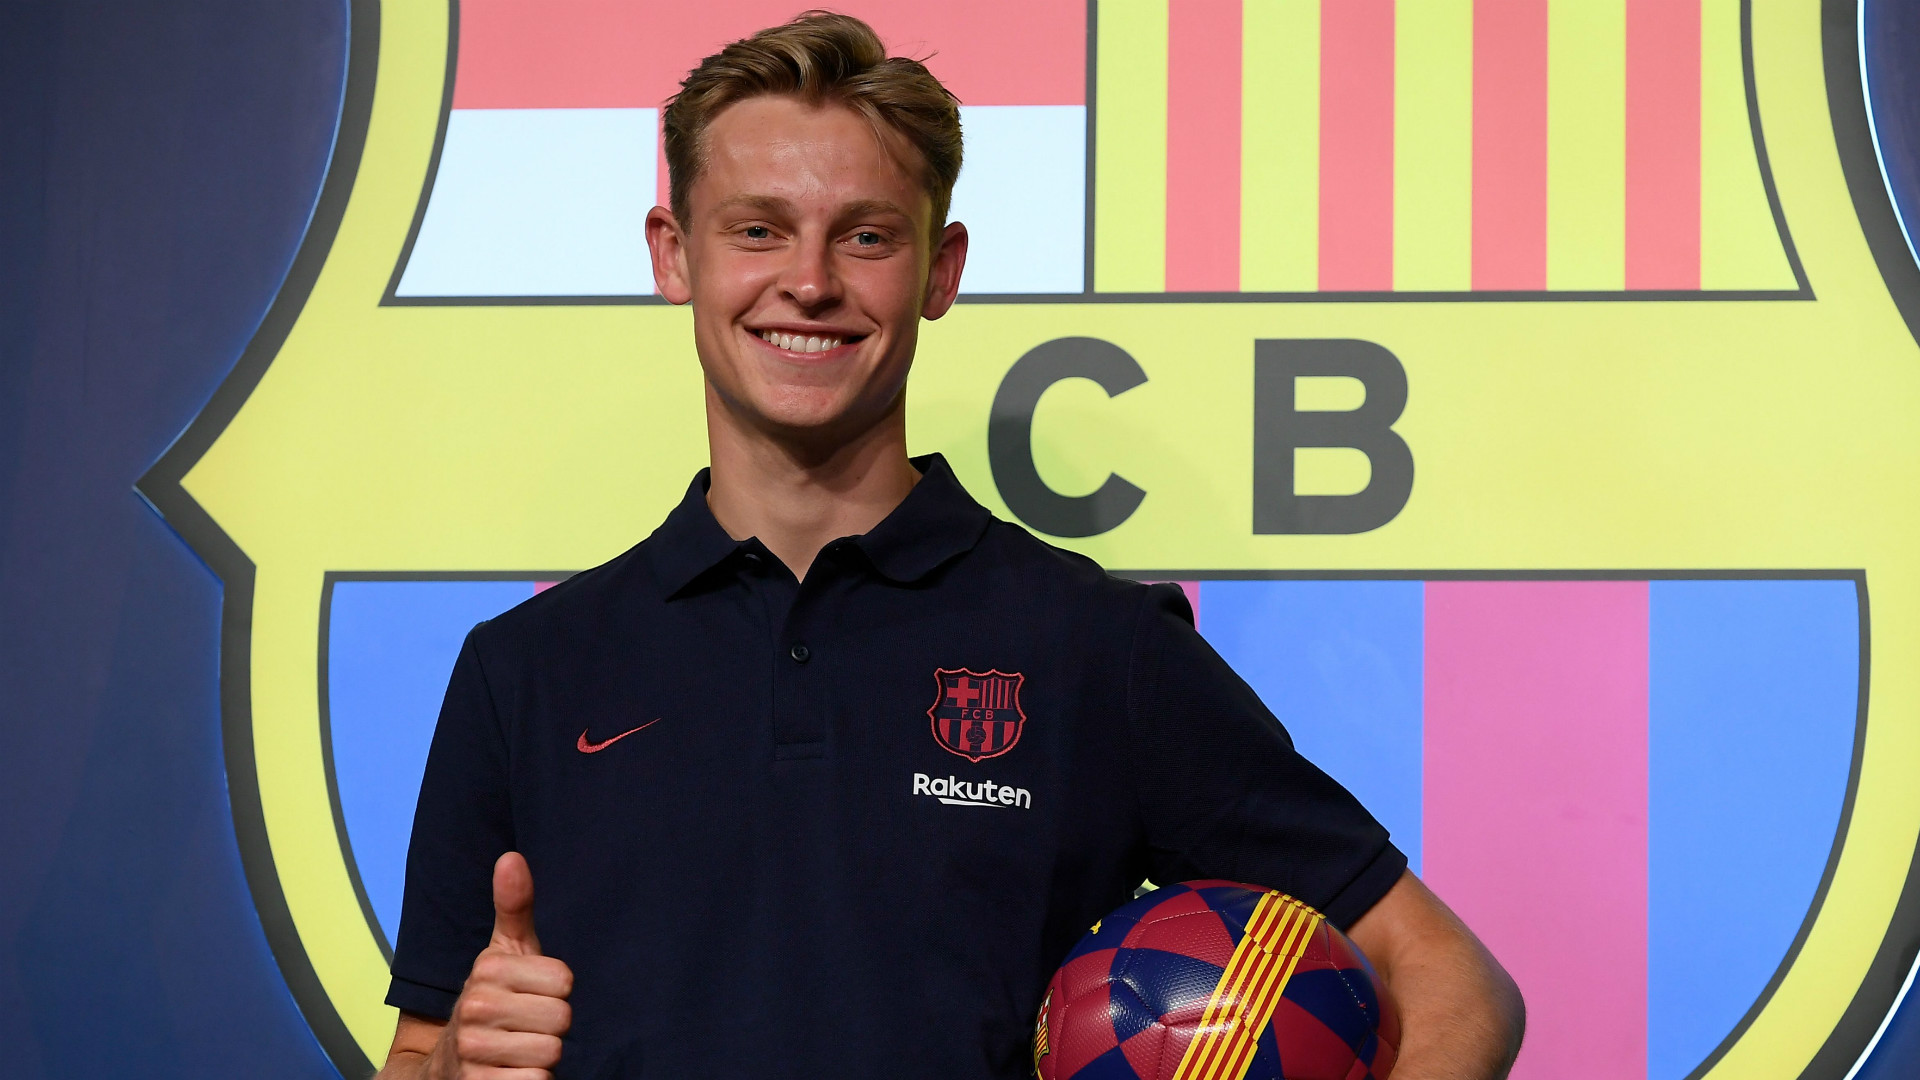 Barcelona recruit De Jong hopes for De Ligt reunion at Nou Camp